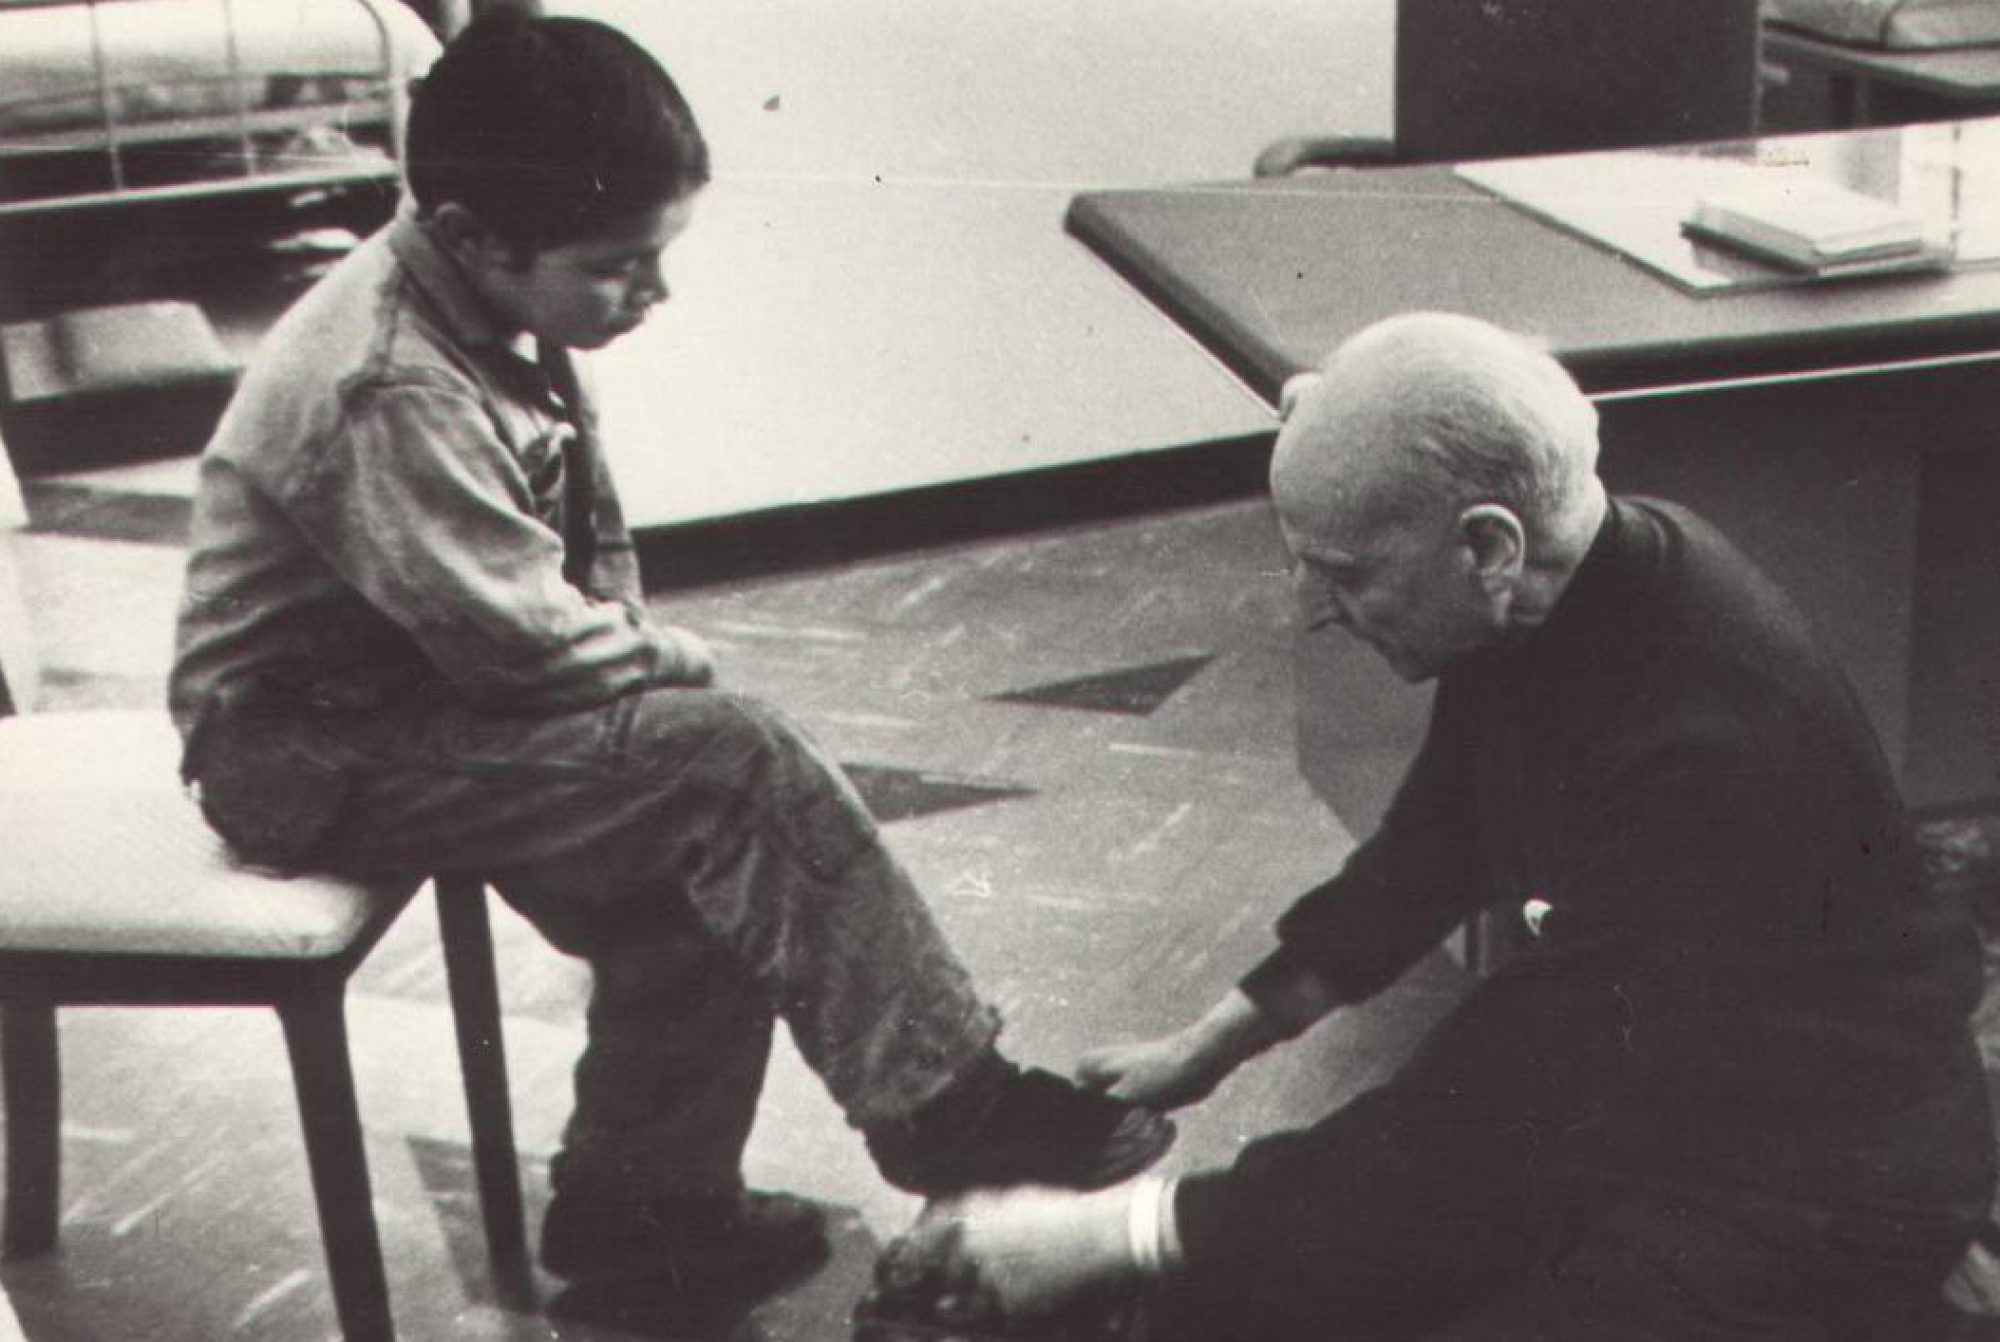 Fr Pedro Arrupe SJ shining shoes for a children in Quito, Ecuador in 1971.